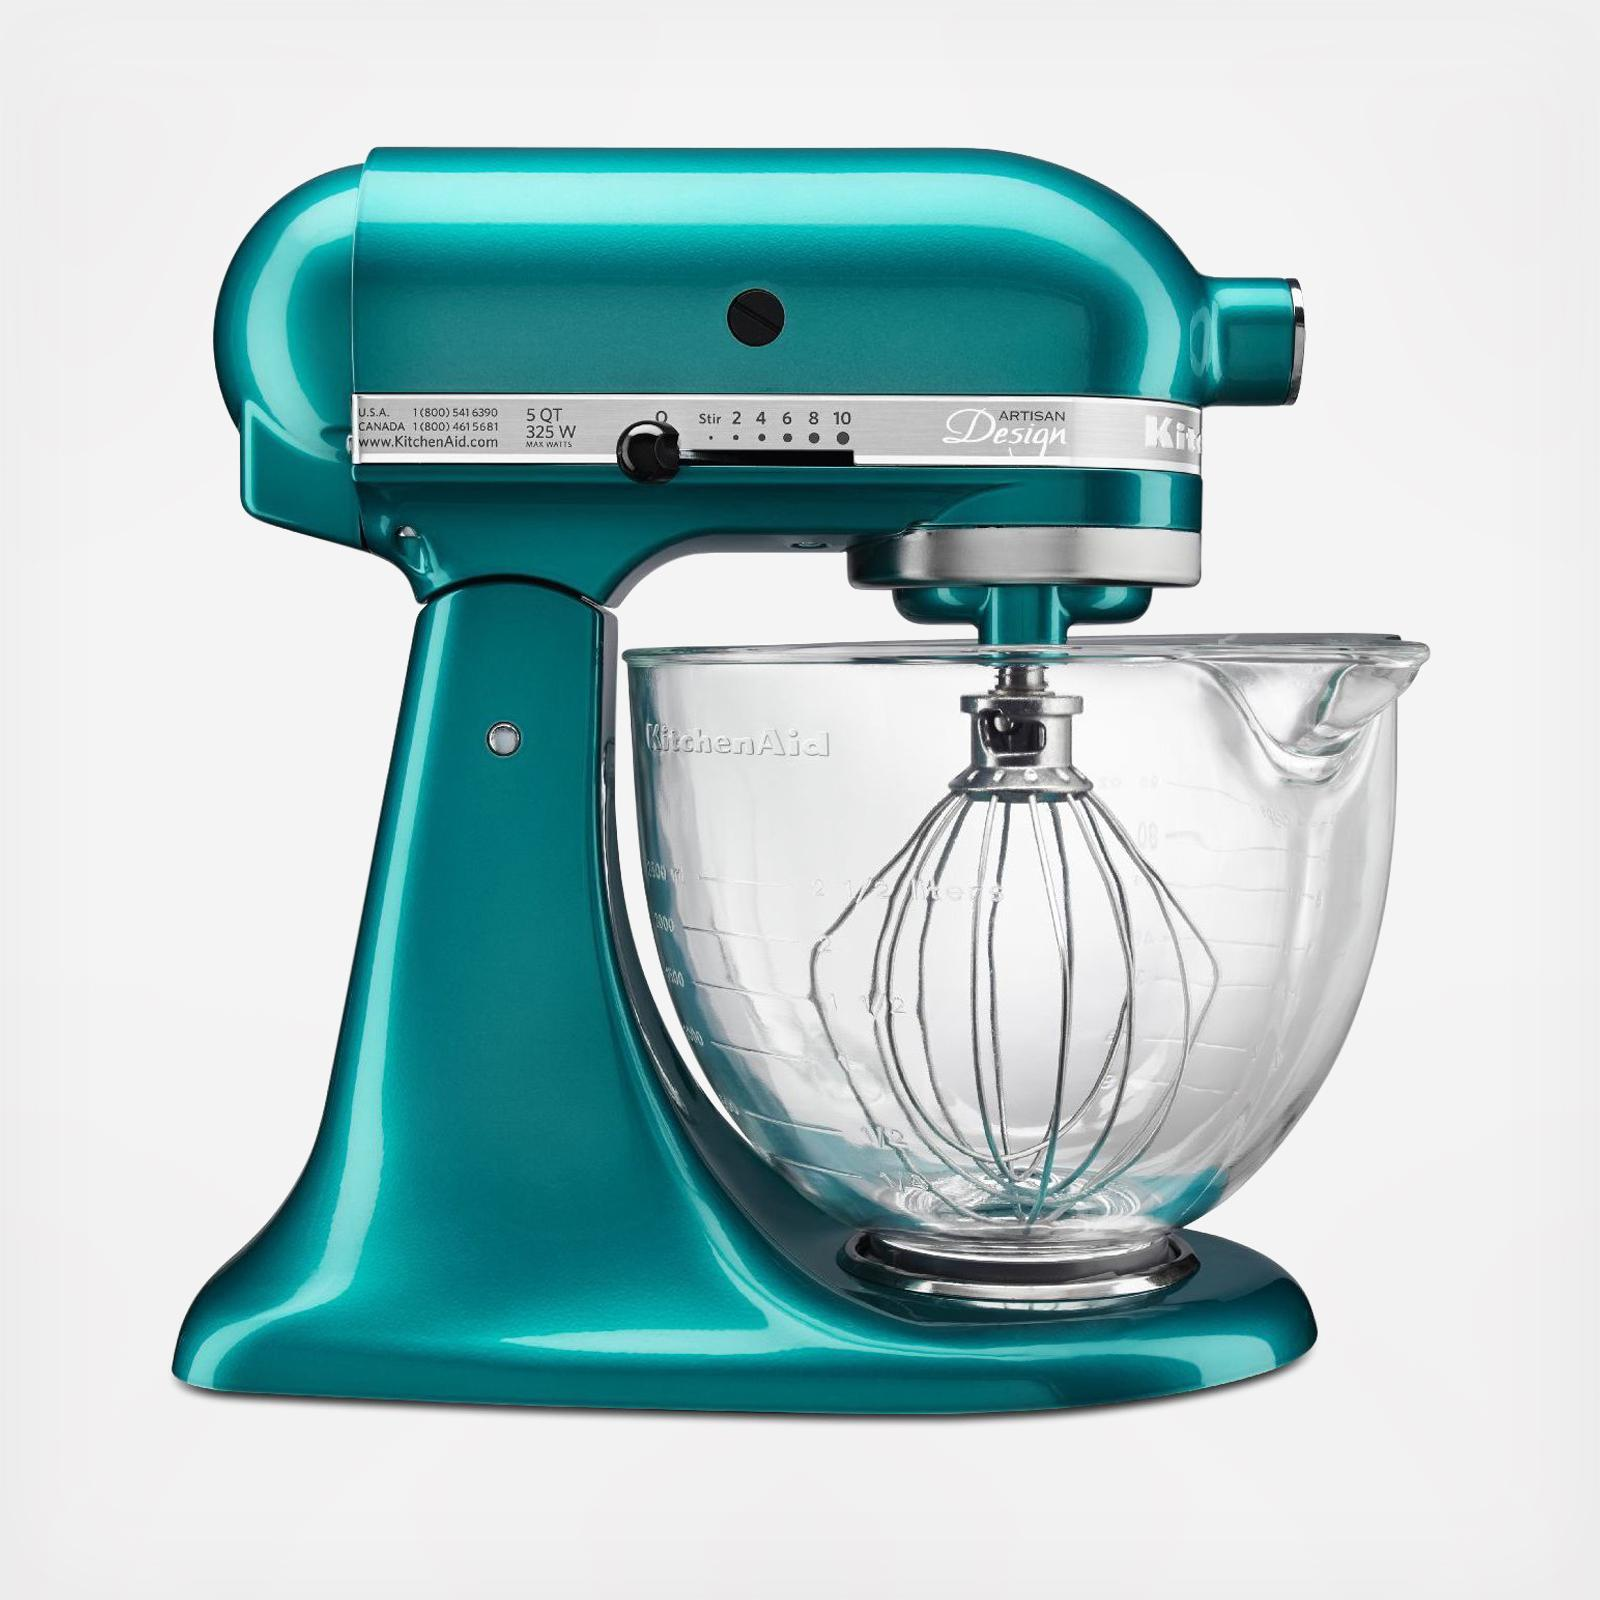 Artisan Design Series 5 Qt. Tilt-Head Stand Mixer with Glass Bowl | Zola